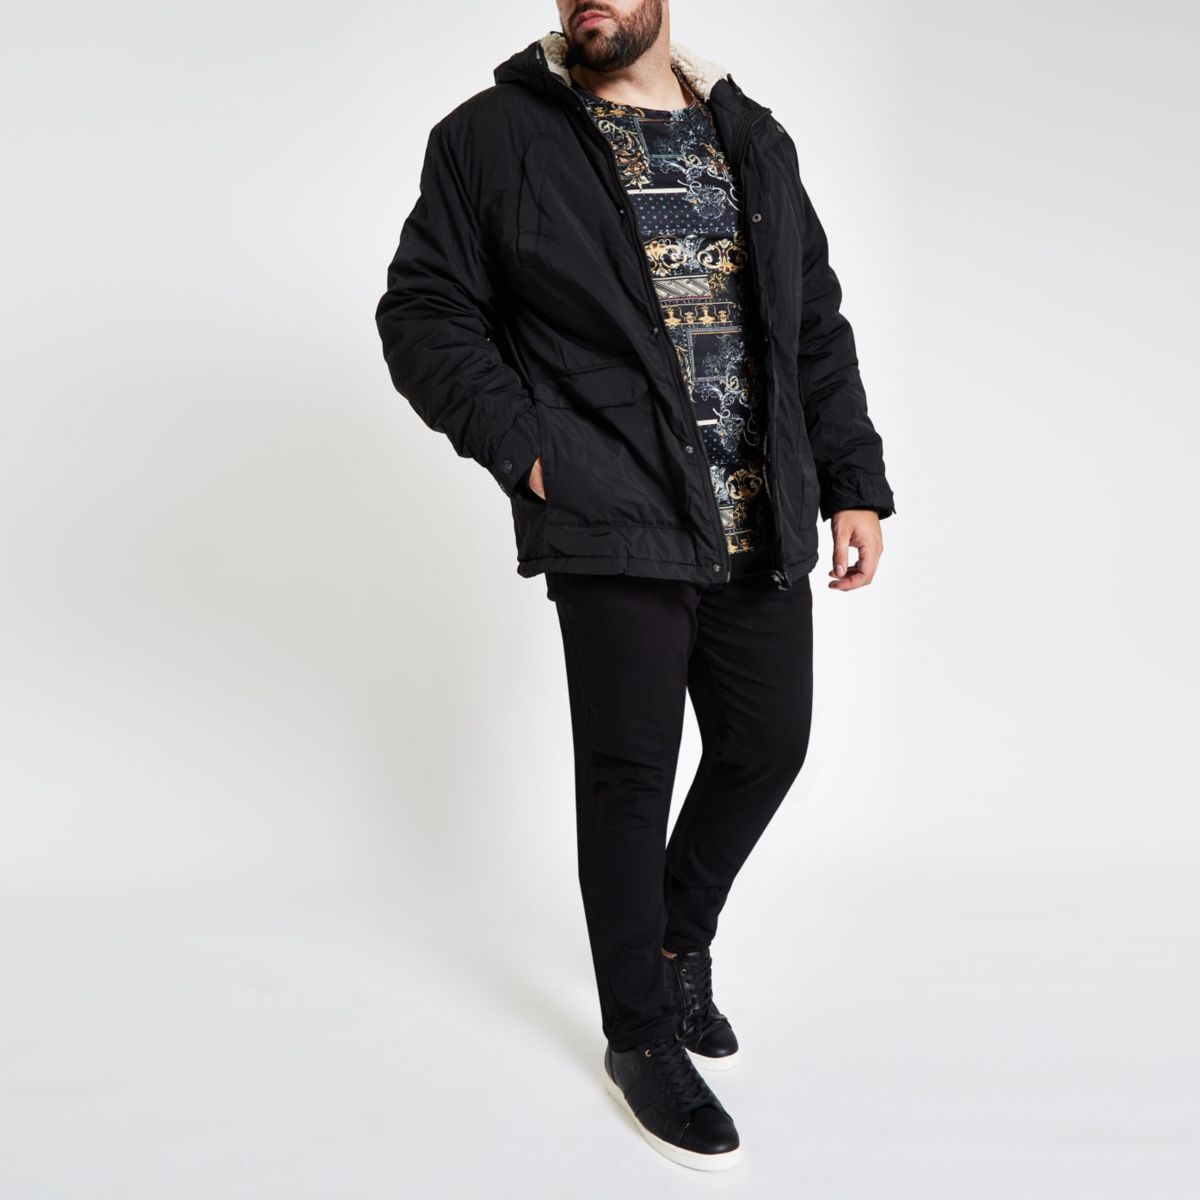 Big & Tall black hooded borg lined coat